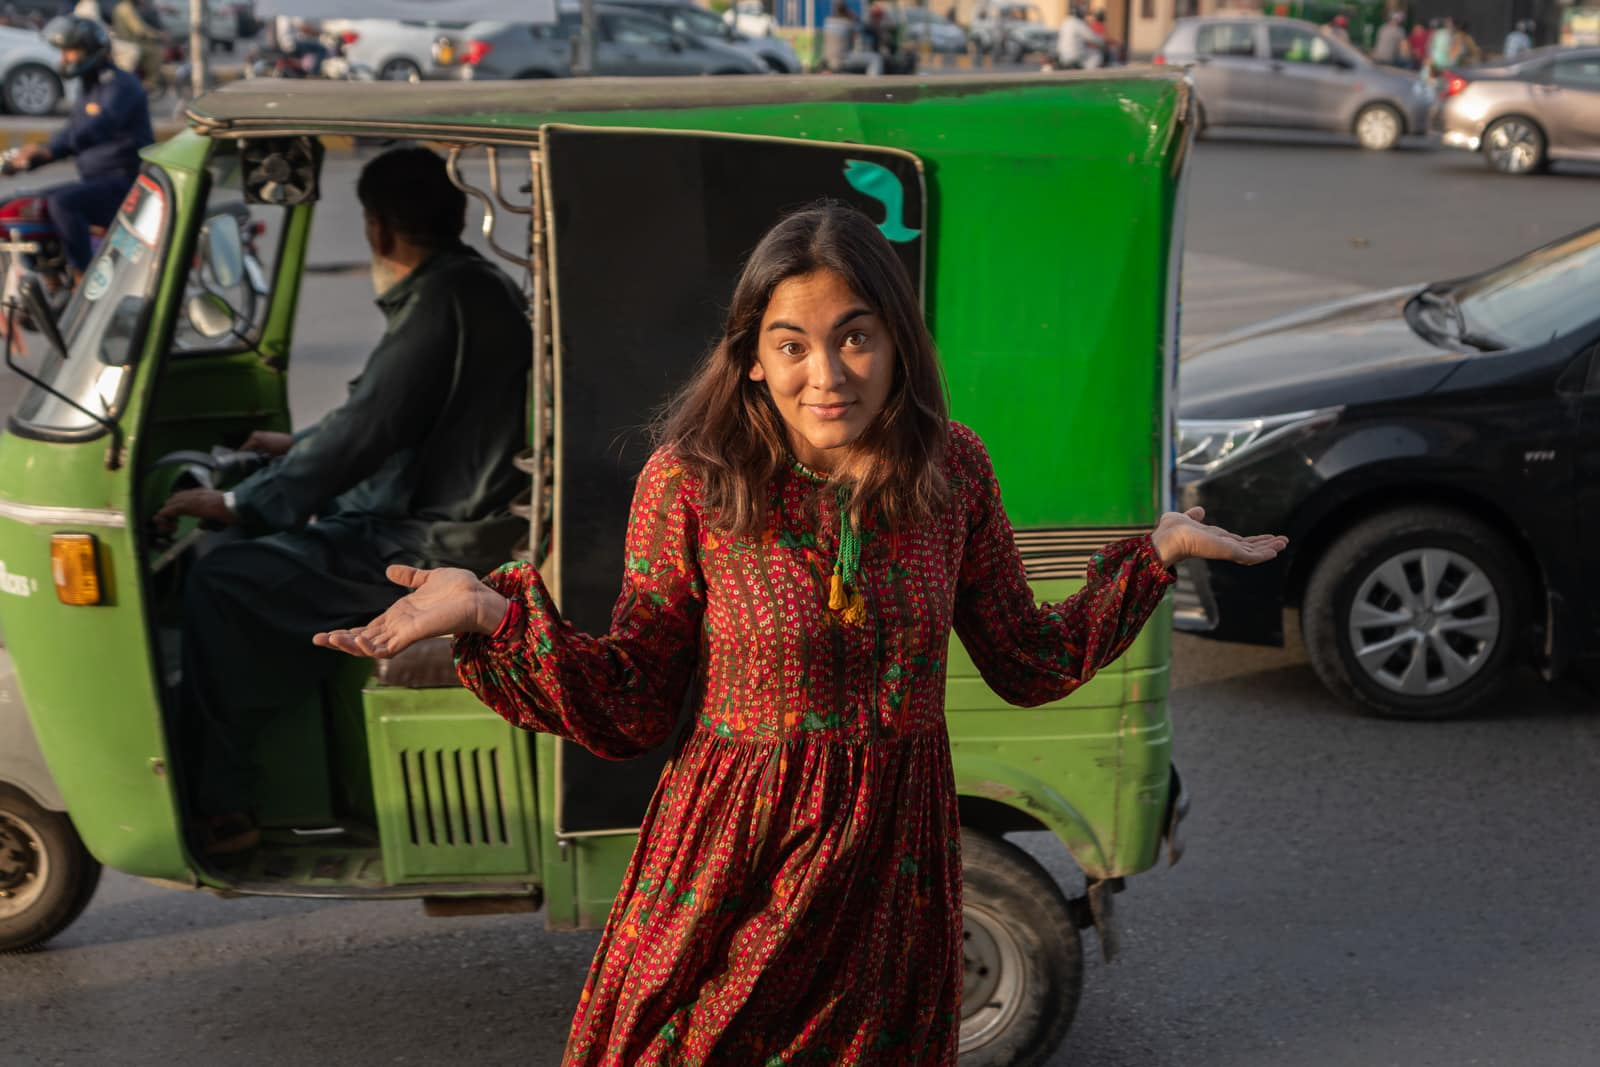 Female traveler in Pakistan traffic